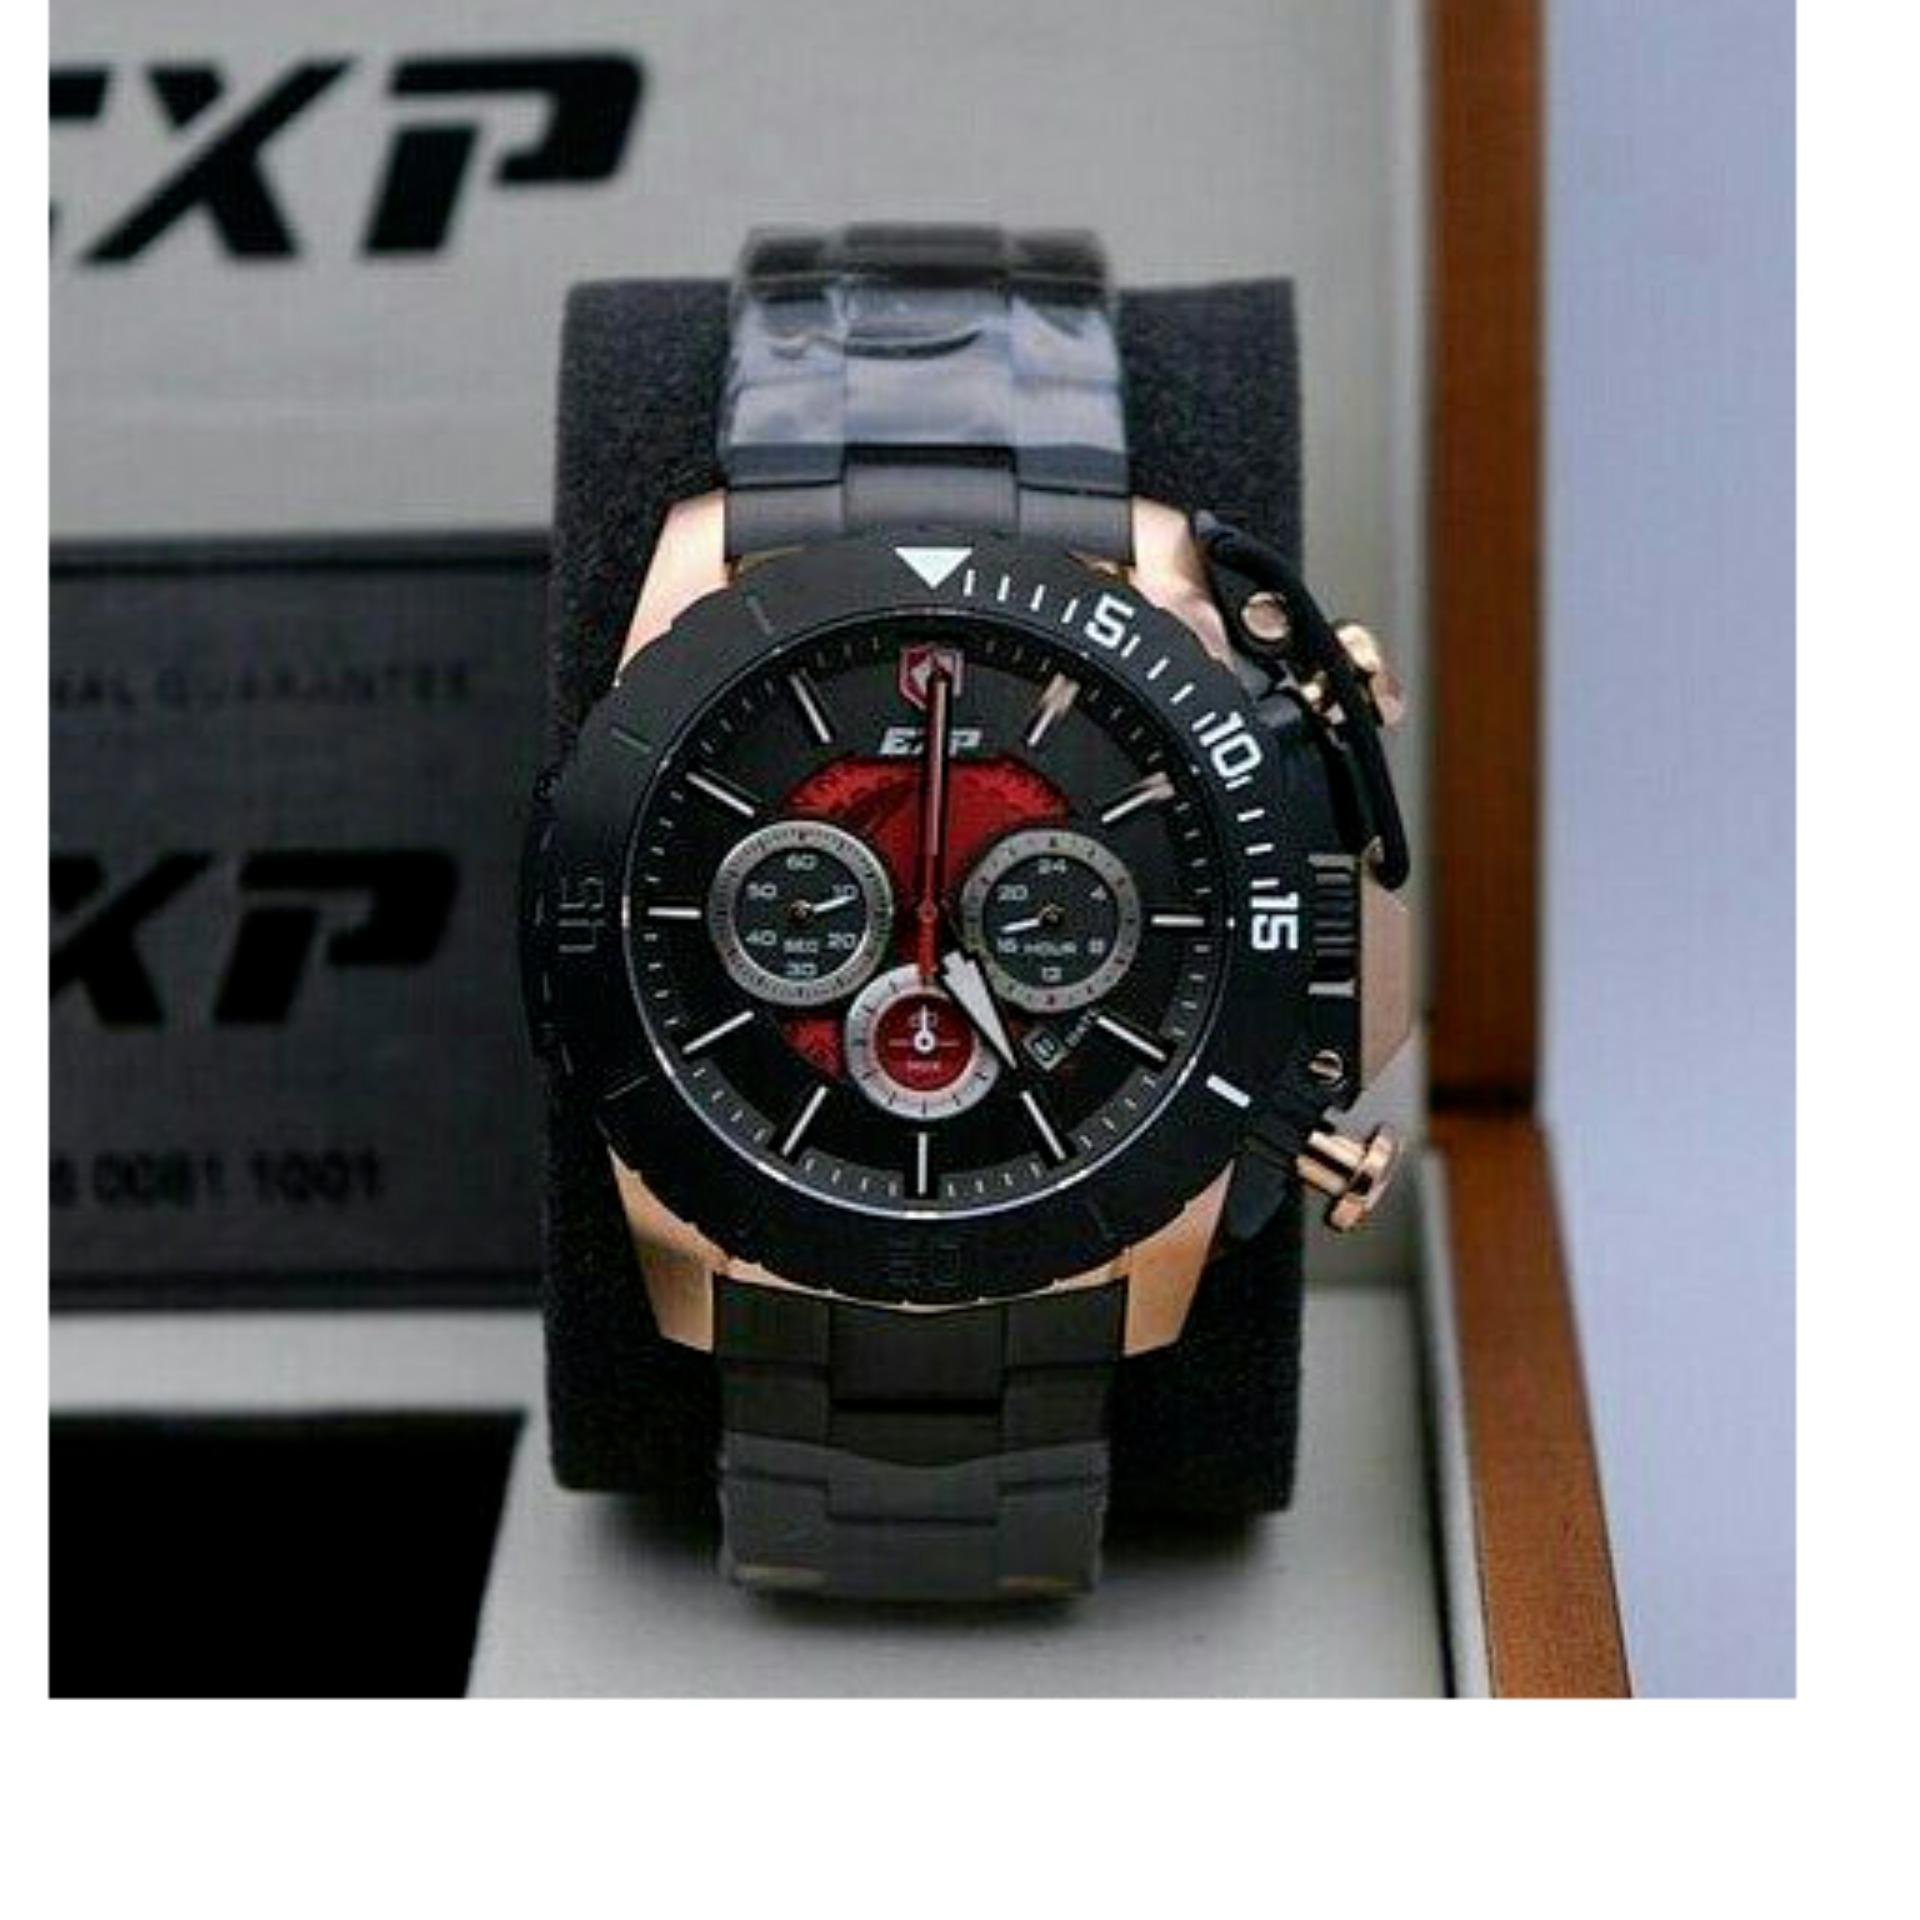 Buy Sell Cheapest Exp Expedition Best Quality Product Deals 6728 Jam Tangan Pria Rosegold Hitam Original 3002 Black Red